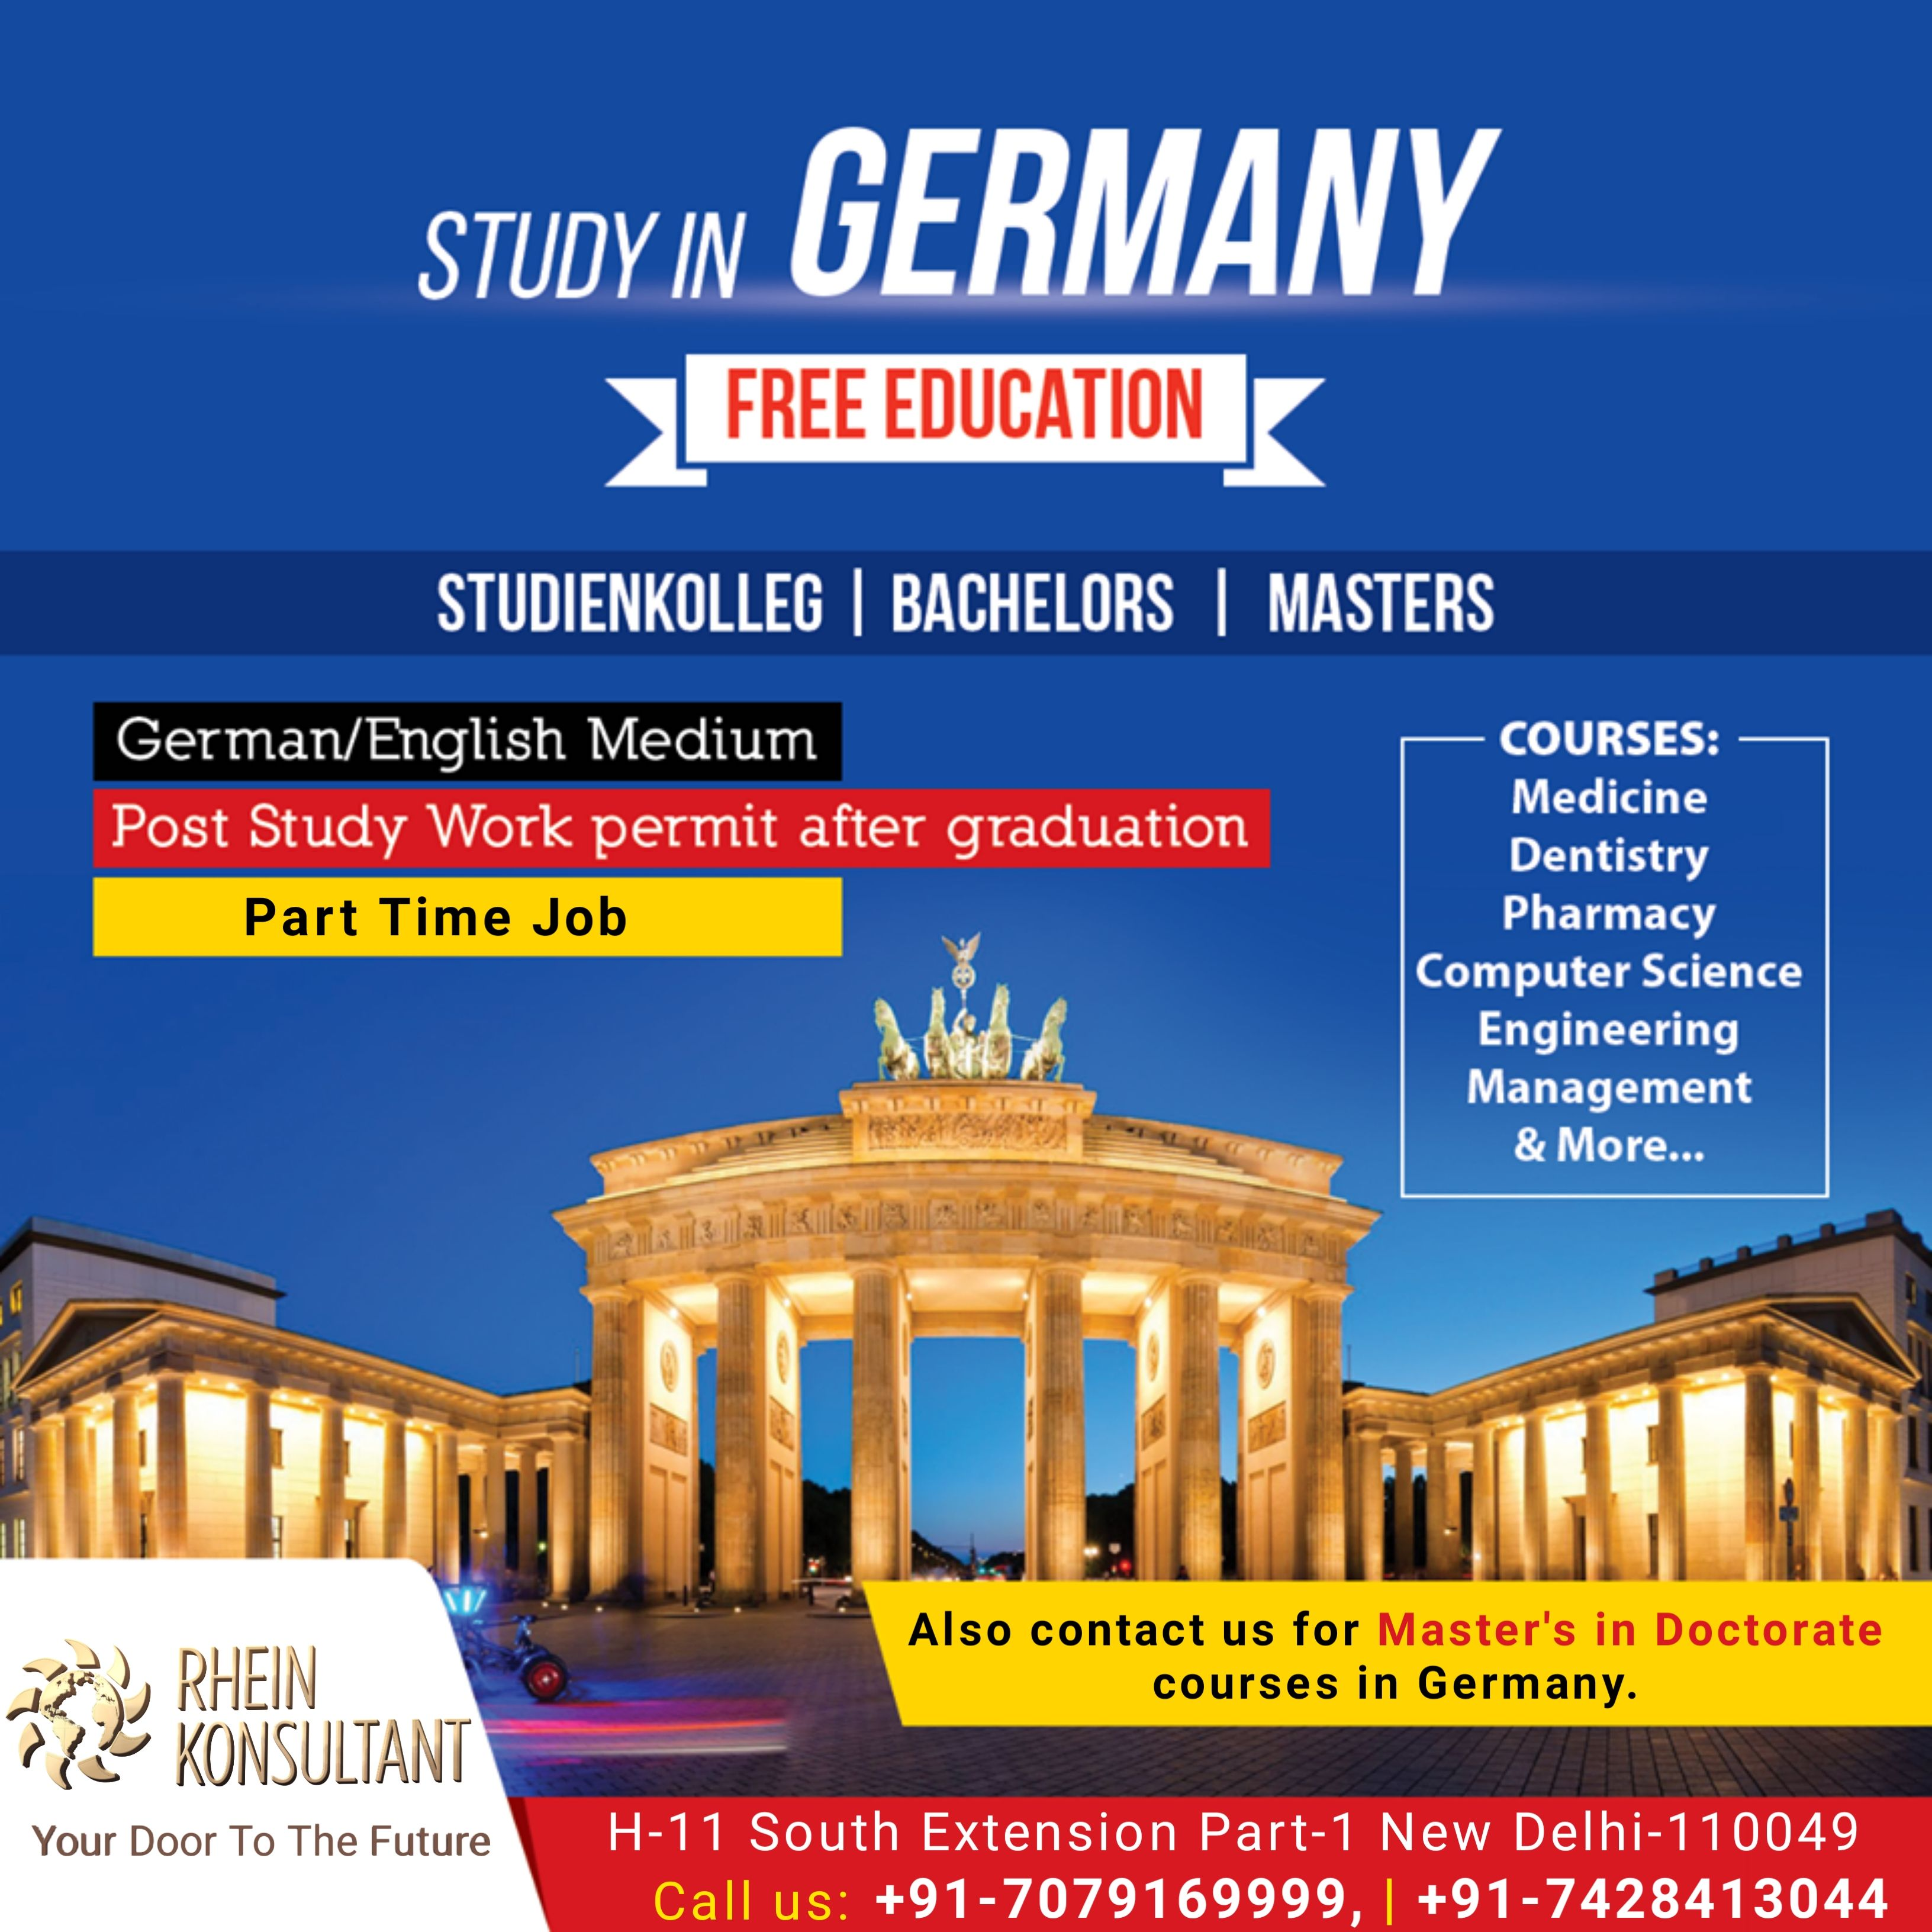 Germany offers FREE education 🔥 TopRanked Universities